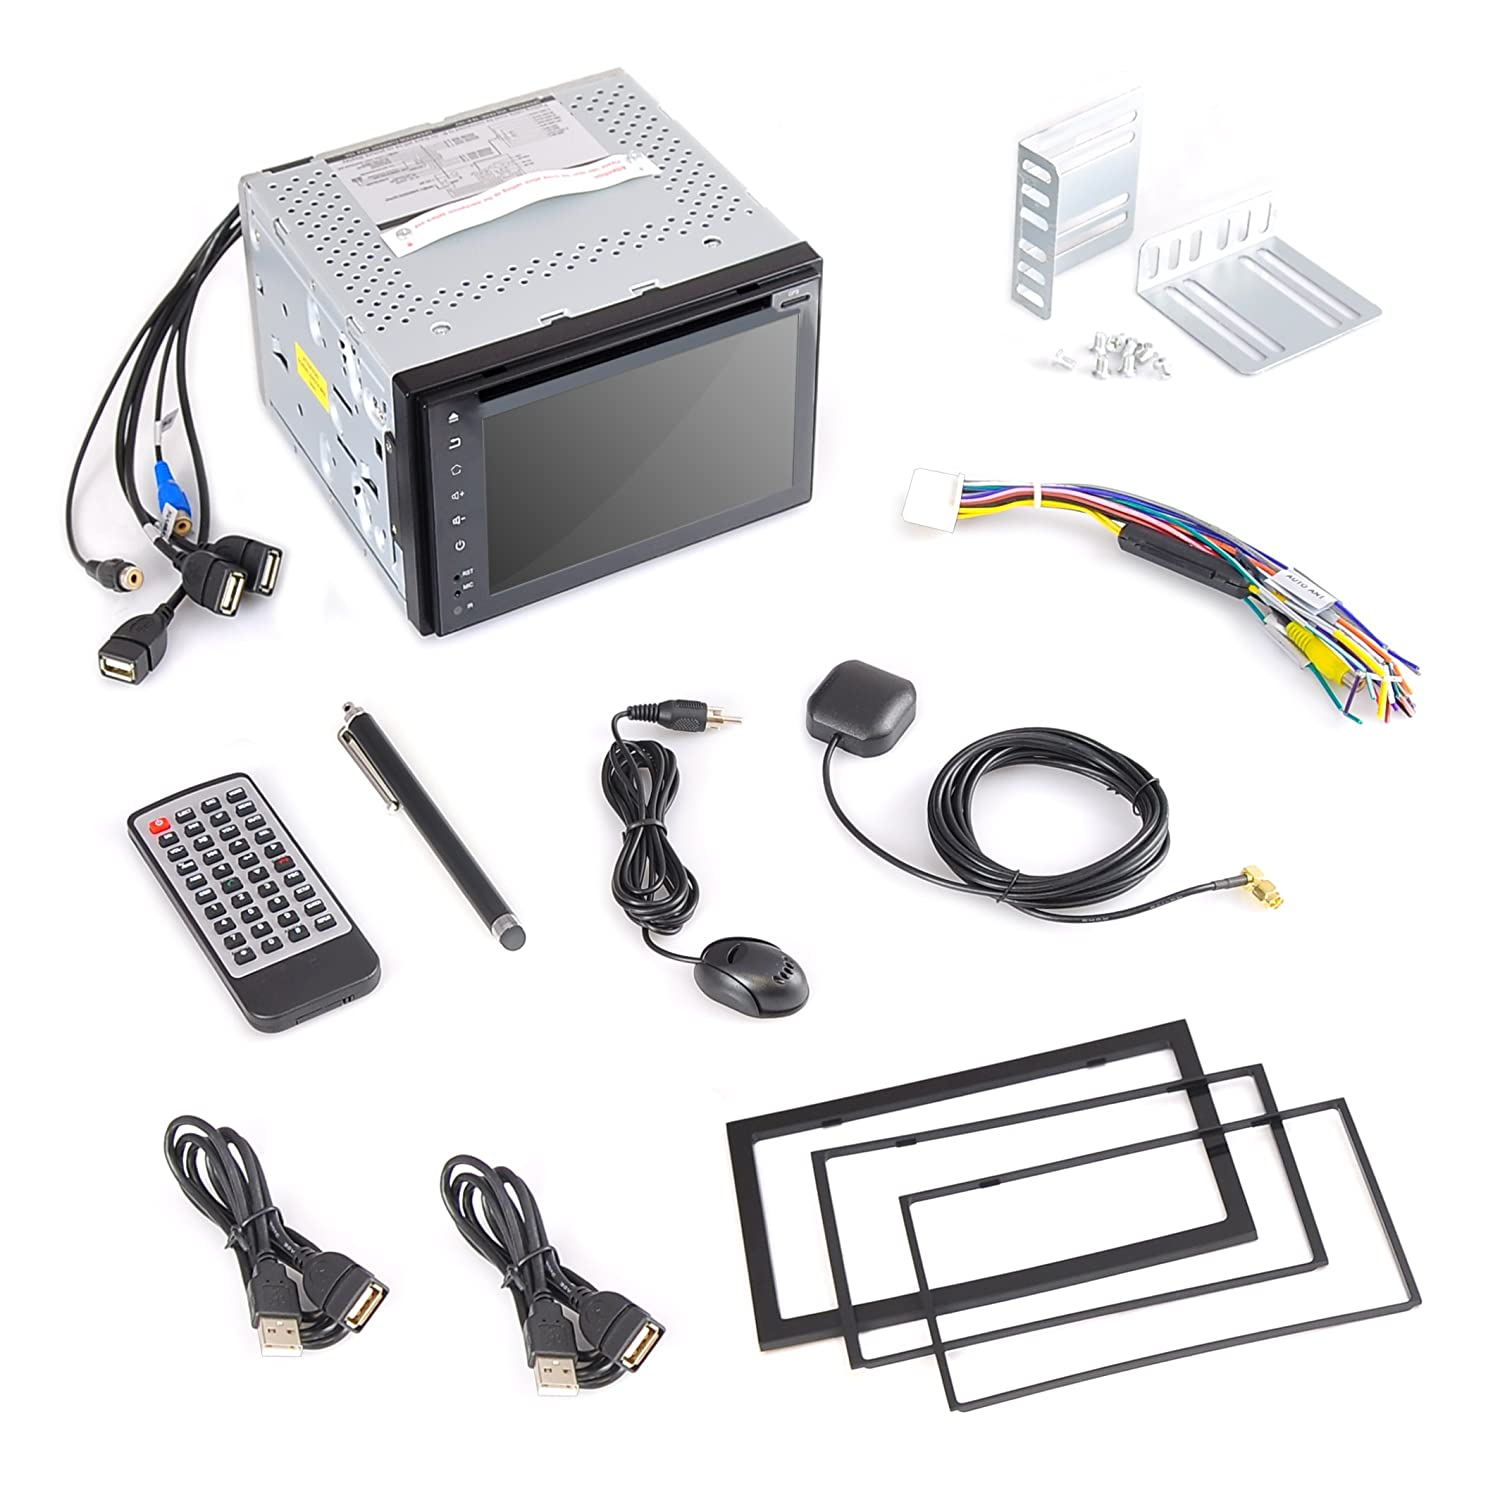 Pyle Pldnand621 Gps Android Car Stereo Wifi Double Din Dvd Head Unit Wire Harness Same As Computer Navigation Hands Free Bluetooth Electronics